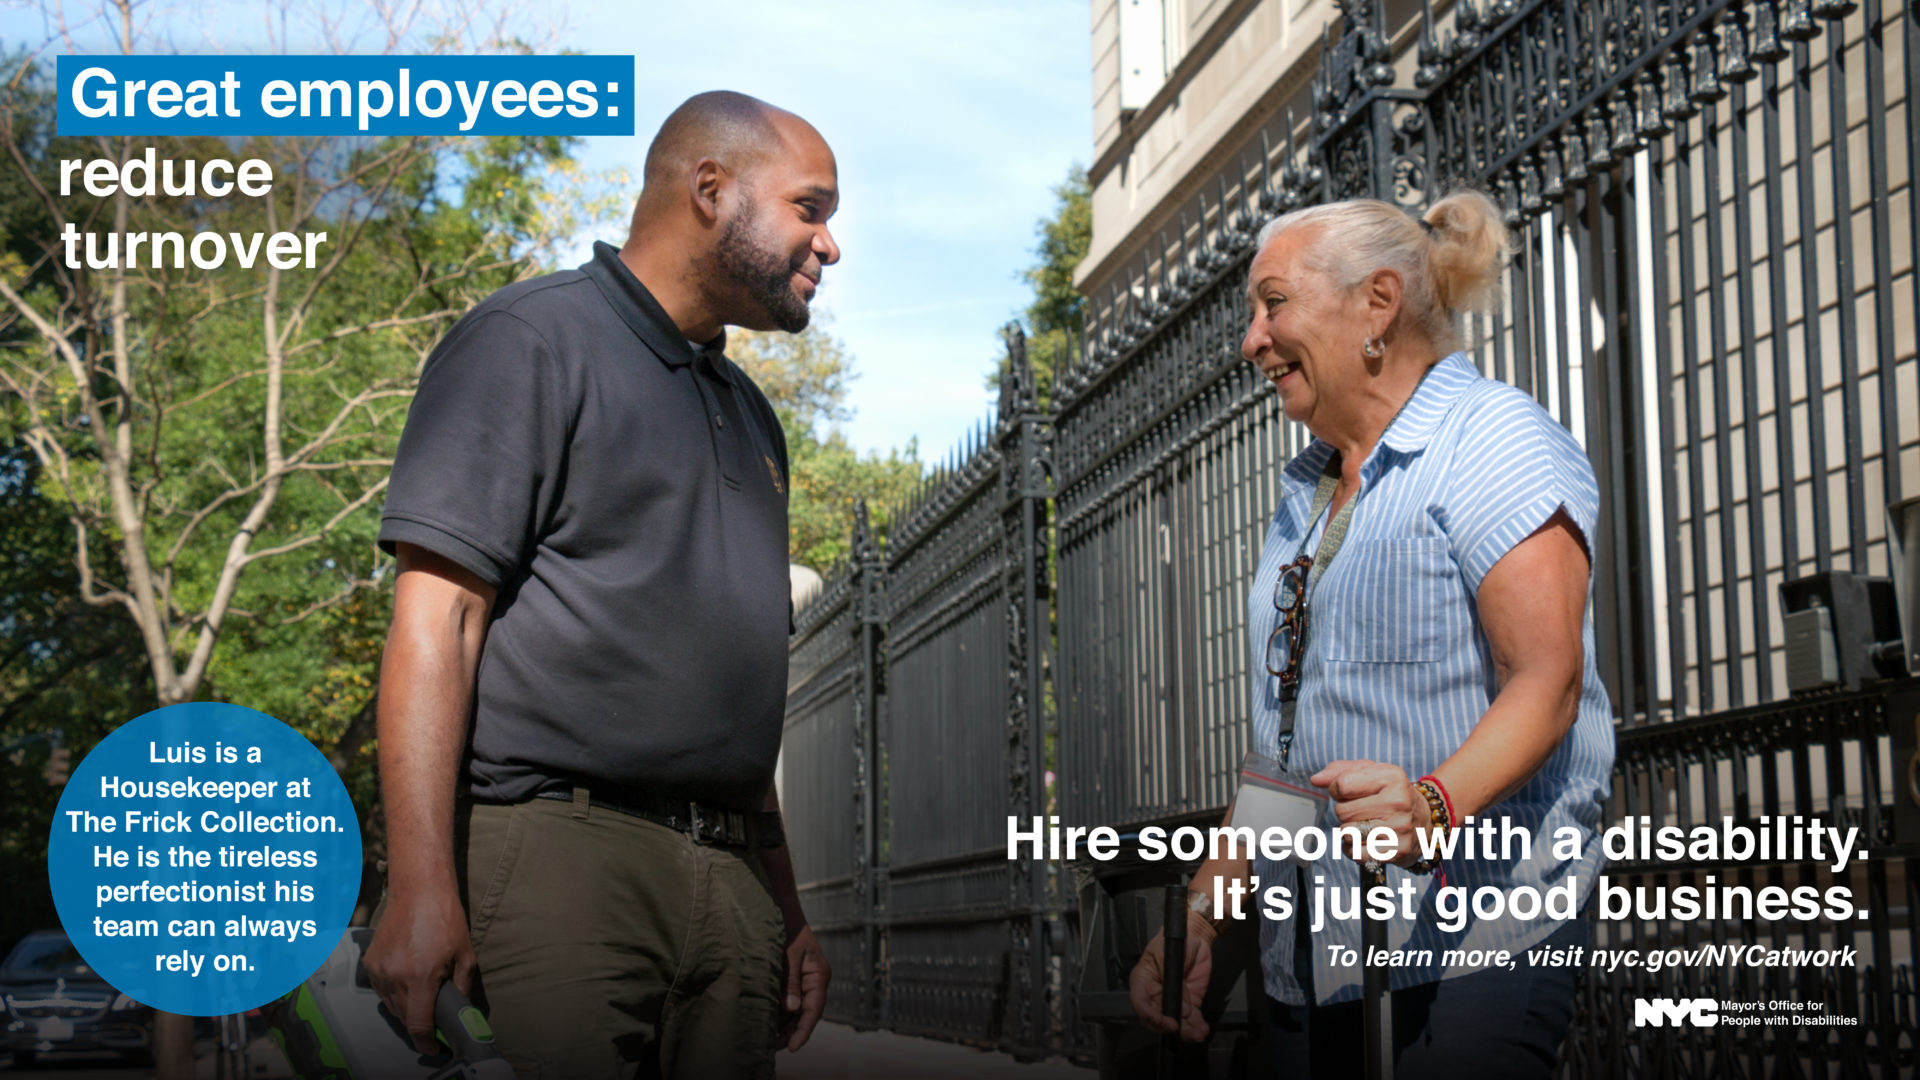 Hire Someone with a Disability banner